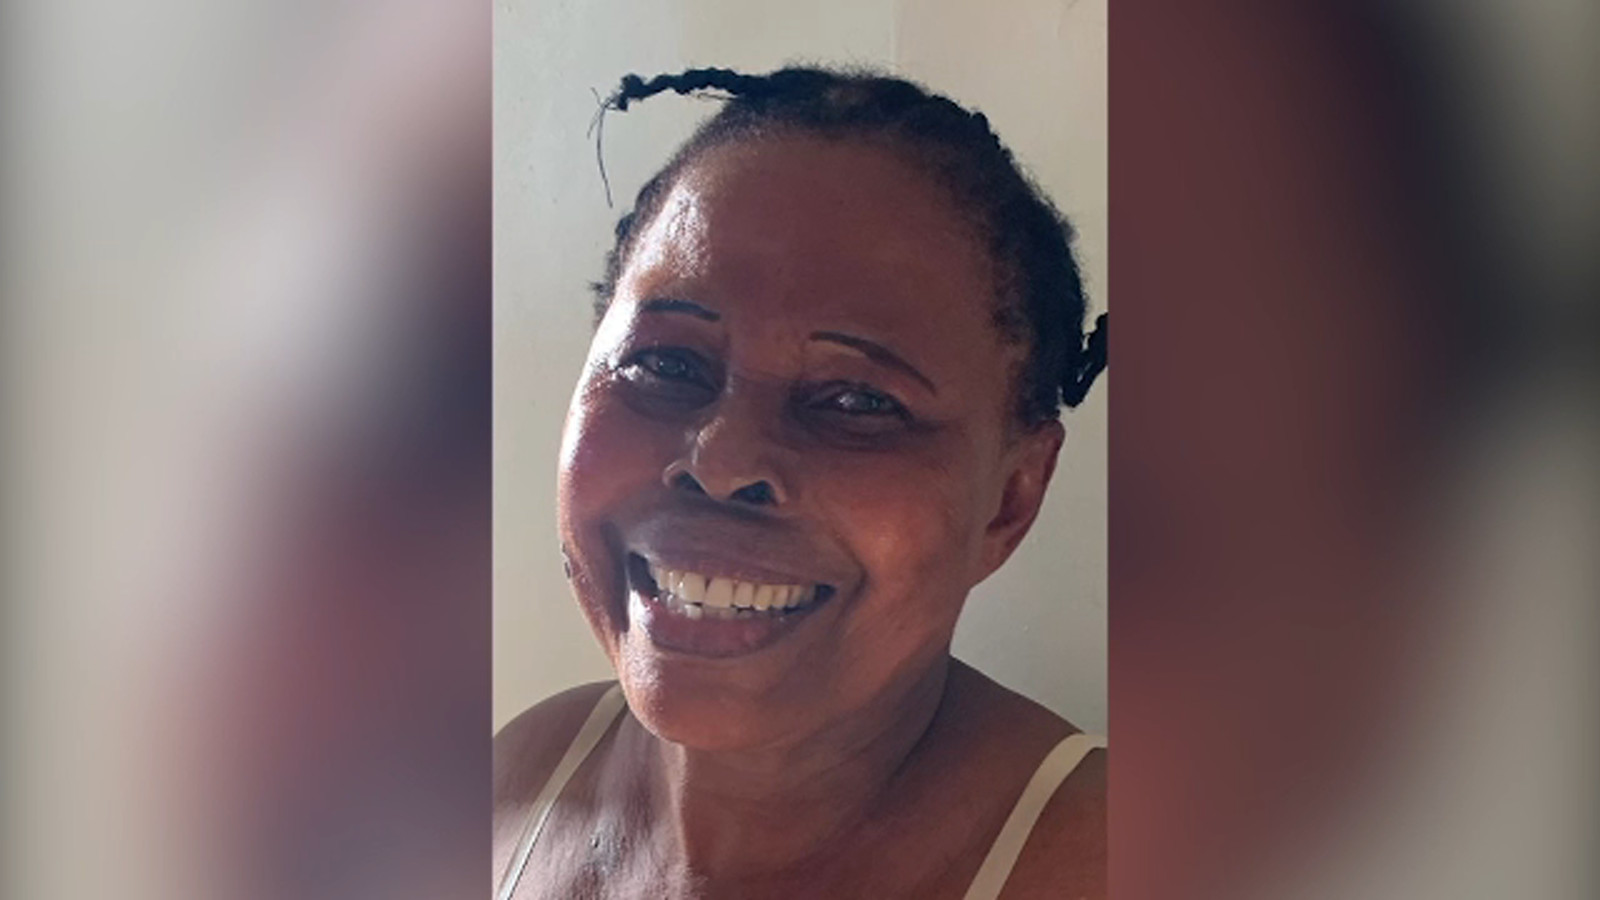 71-year-old Ghanaian nanny arrested in US after being caught on camera hitting and kicking a baby under her care lindaikejisblog 2